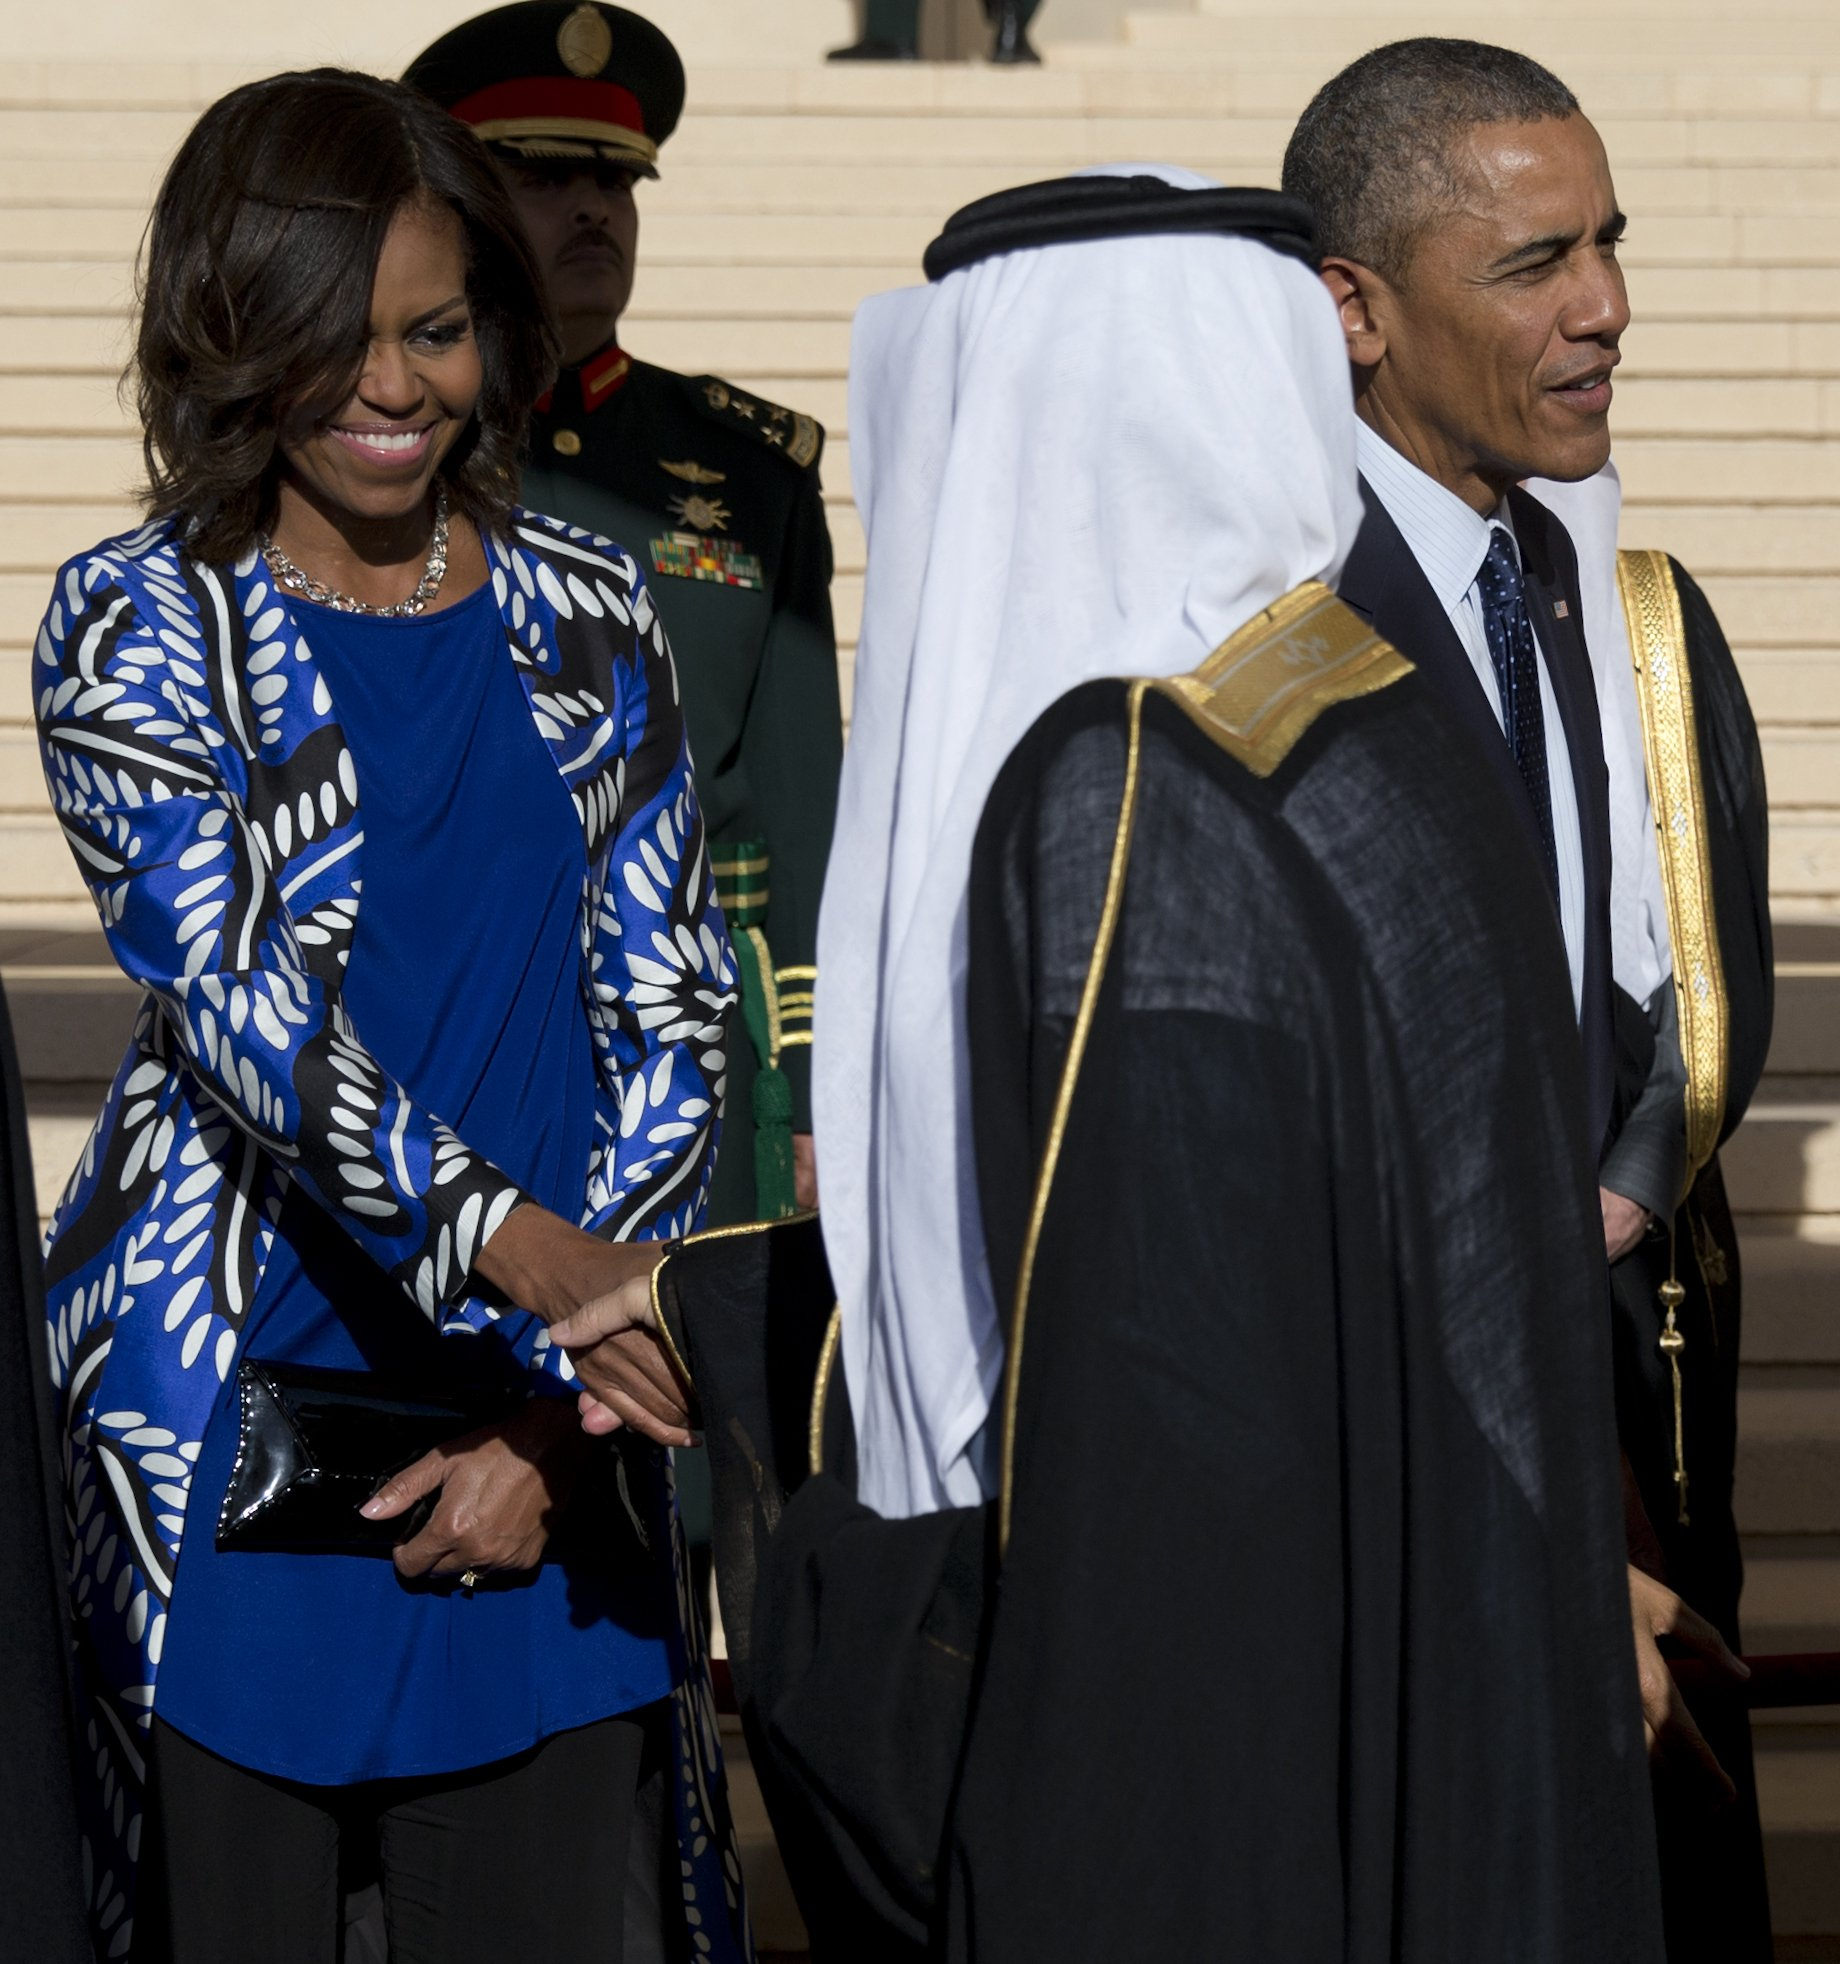 President Barack Obama and first lady Michelle Obama stand with new Saudi King Salman bin Abdul Aziz for a receiving line as they arrive at King Khalid International Airport, in Riyadh, Saudi Arabia on Jan. 27, 2015.